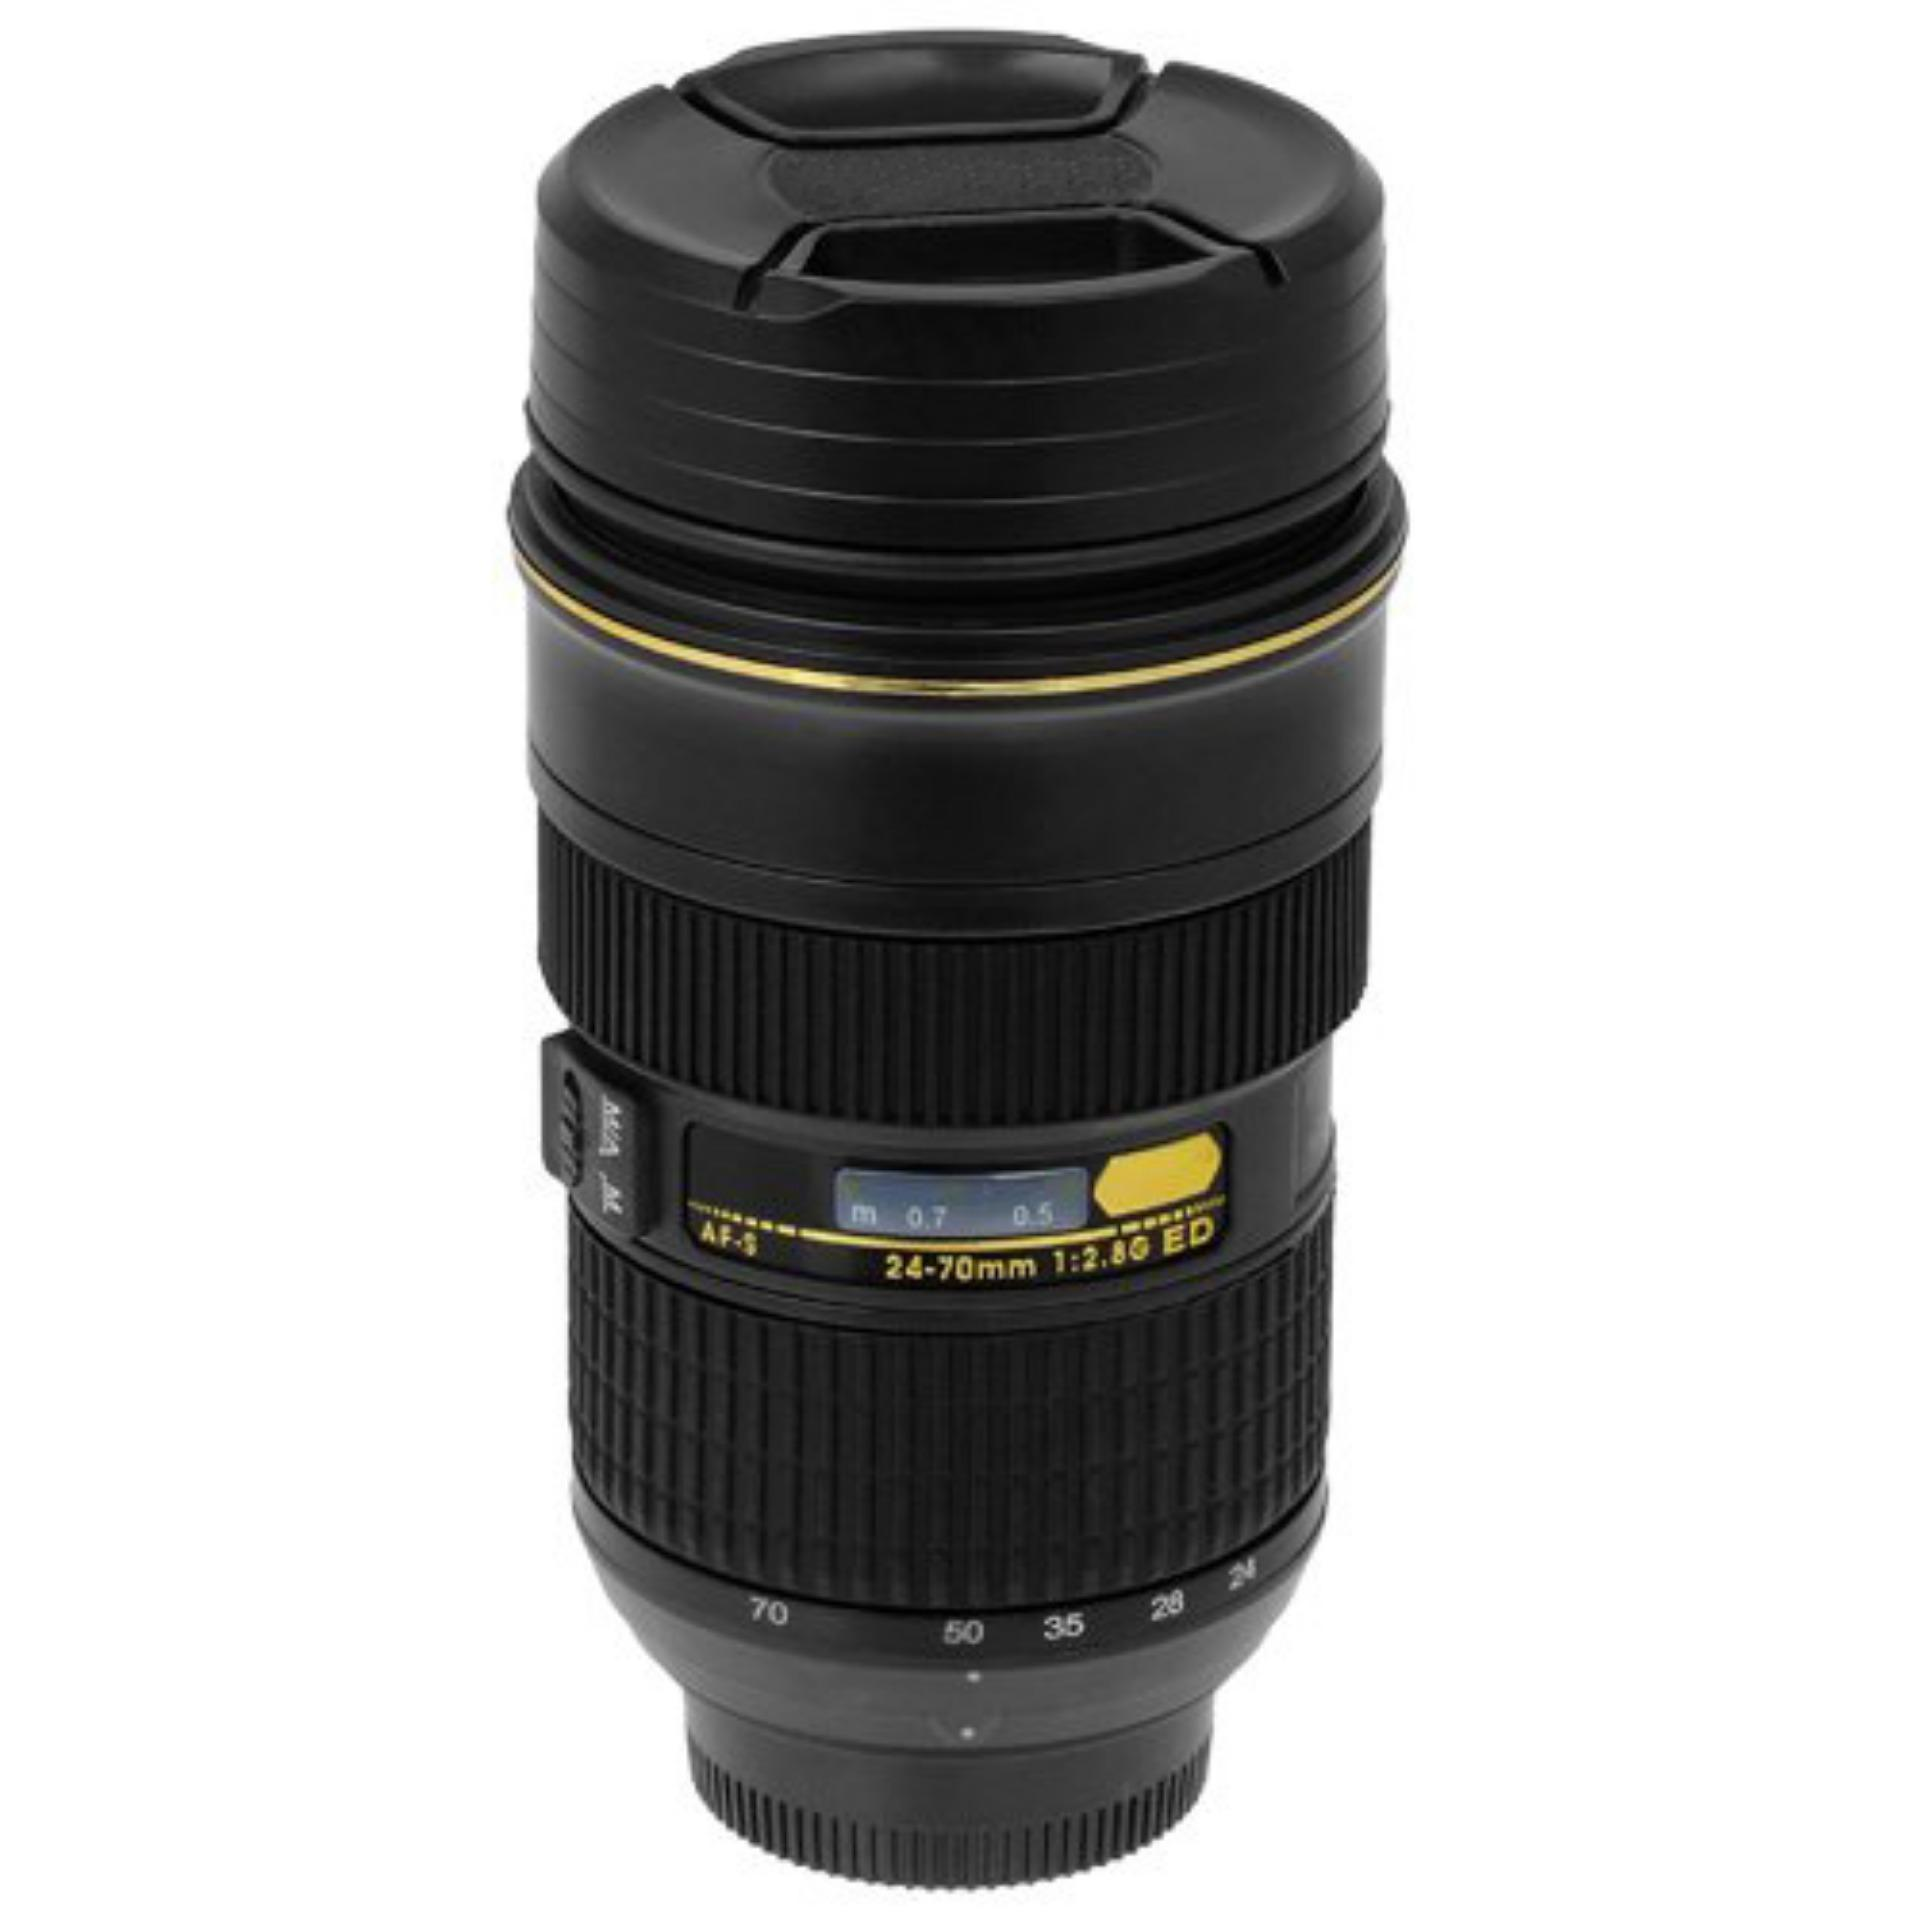 Keimav Nikon 24-70mm Zoom Lens Mug Cup product preview, discount at cheapest price